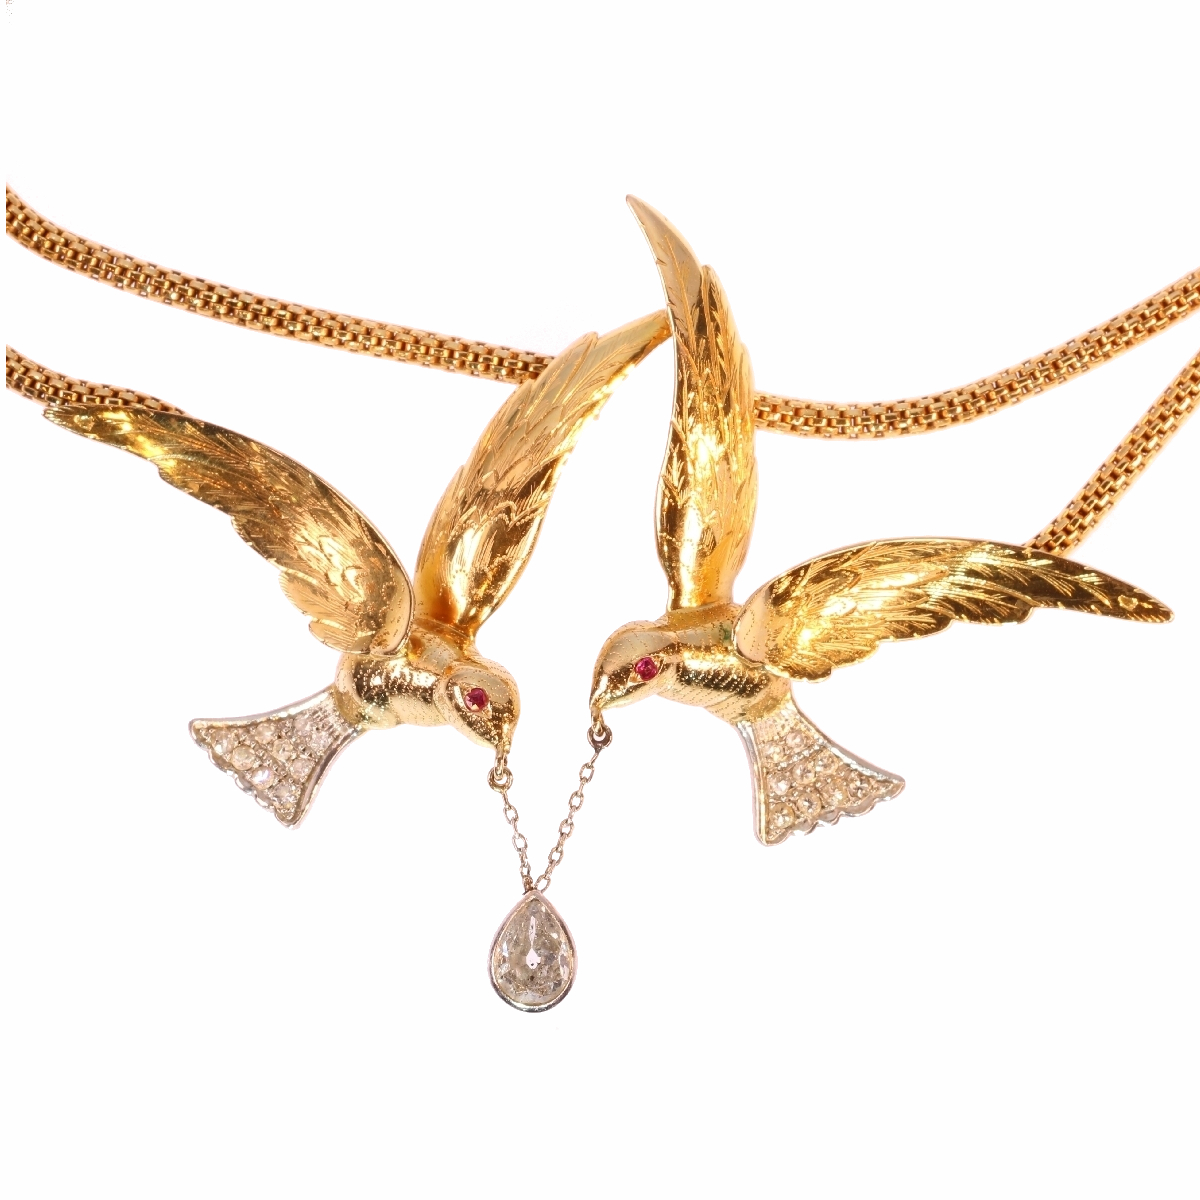 French Fifties necklace with two flying swallows carrying a pear shaped diamond